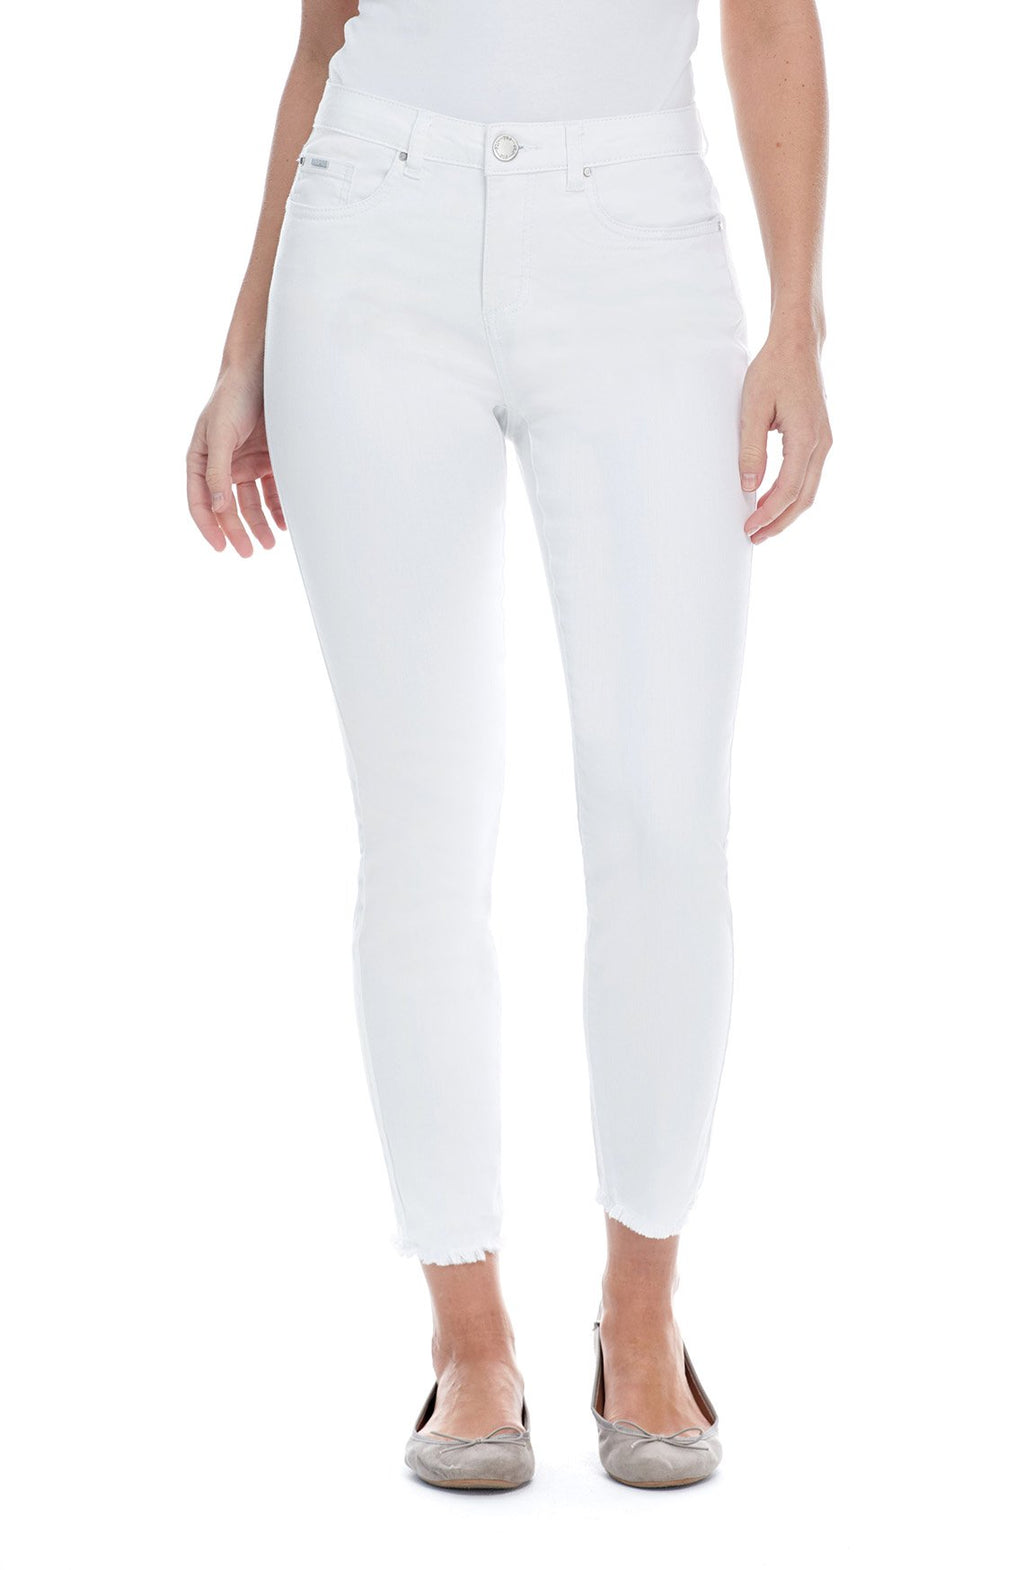 FDJ white mid rise Olivia slim ankle jeans with fray hem